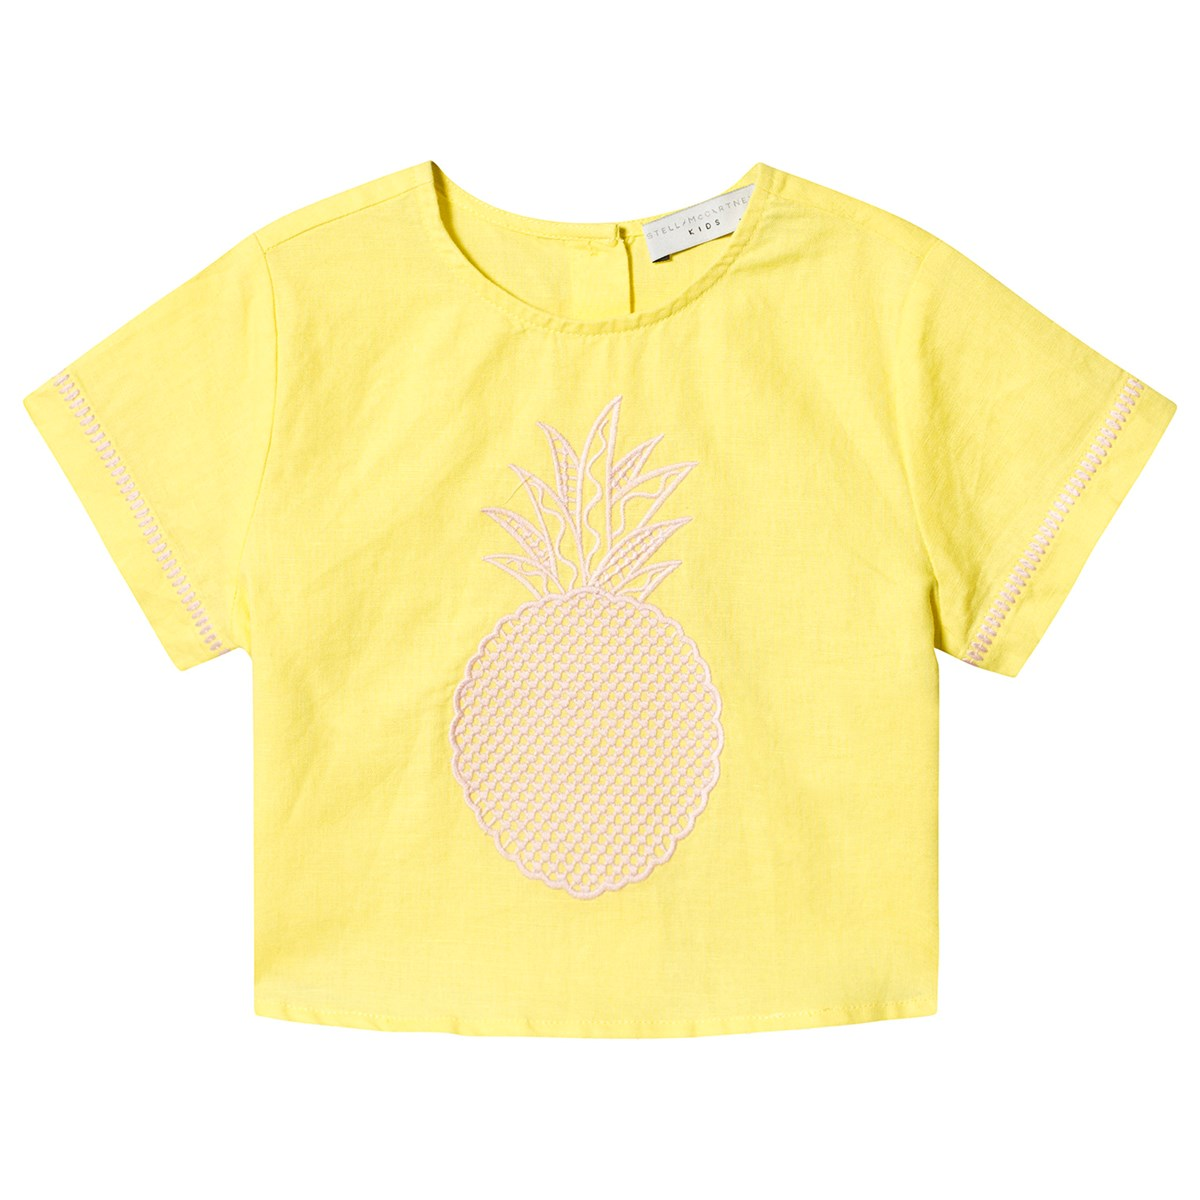 e0f53c612f9 Stella McCartney Kids - Yellow Pineapple Print Tee - Babyshop.com